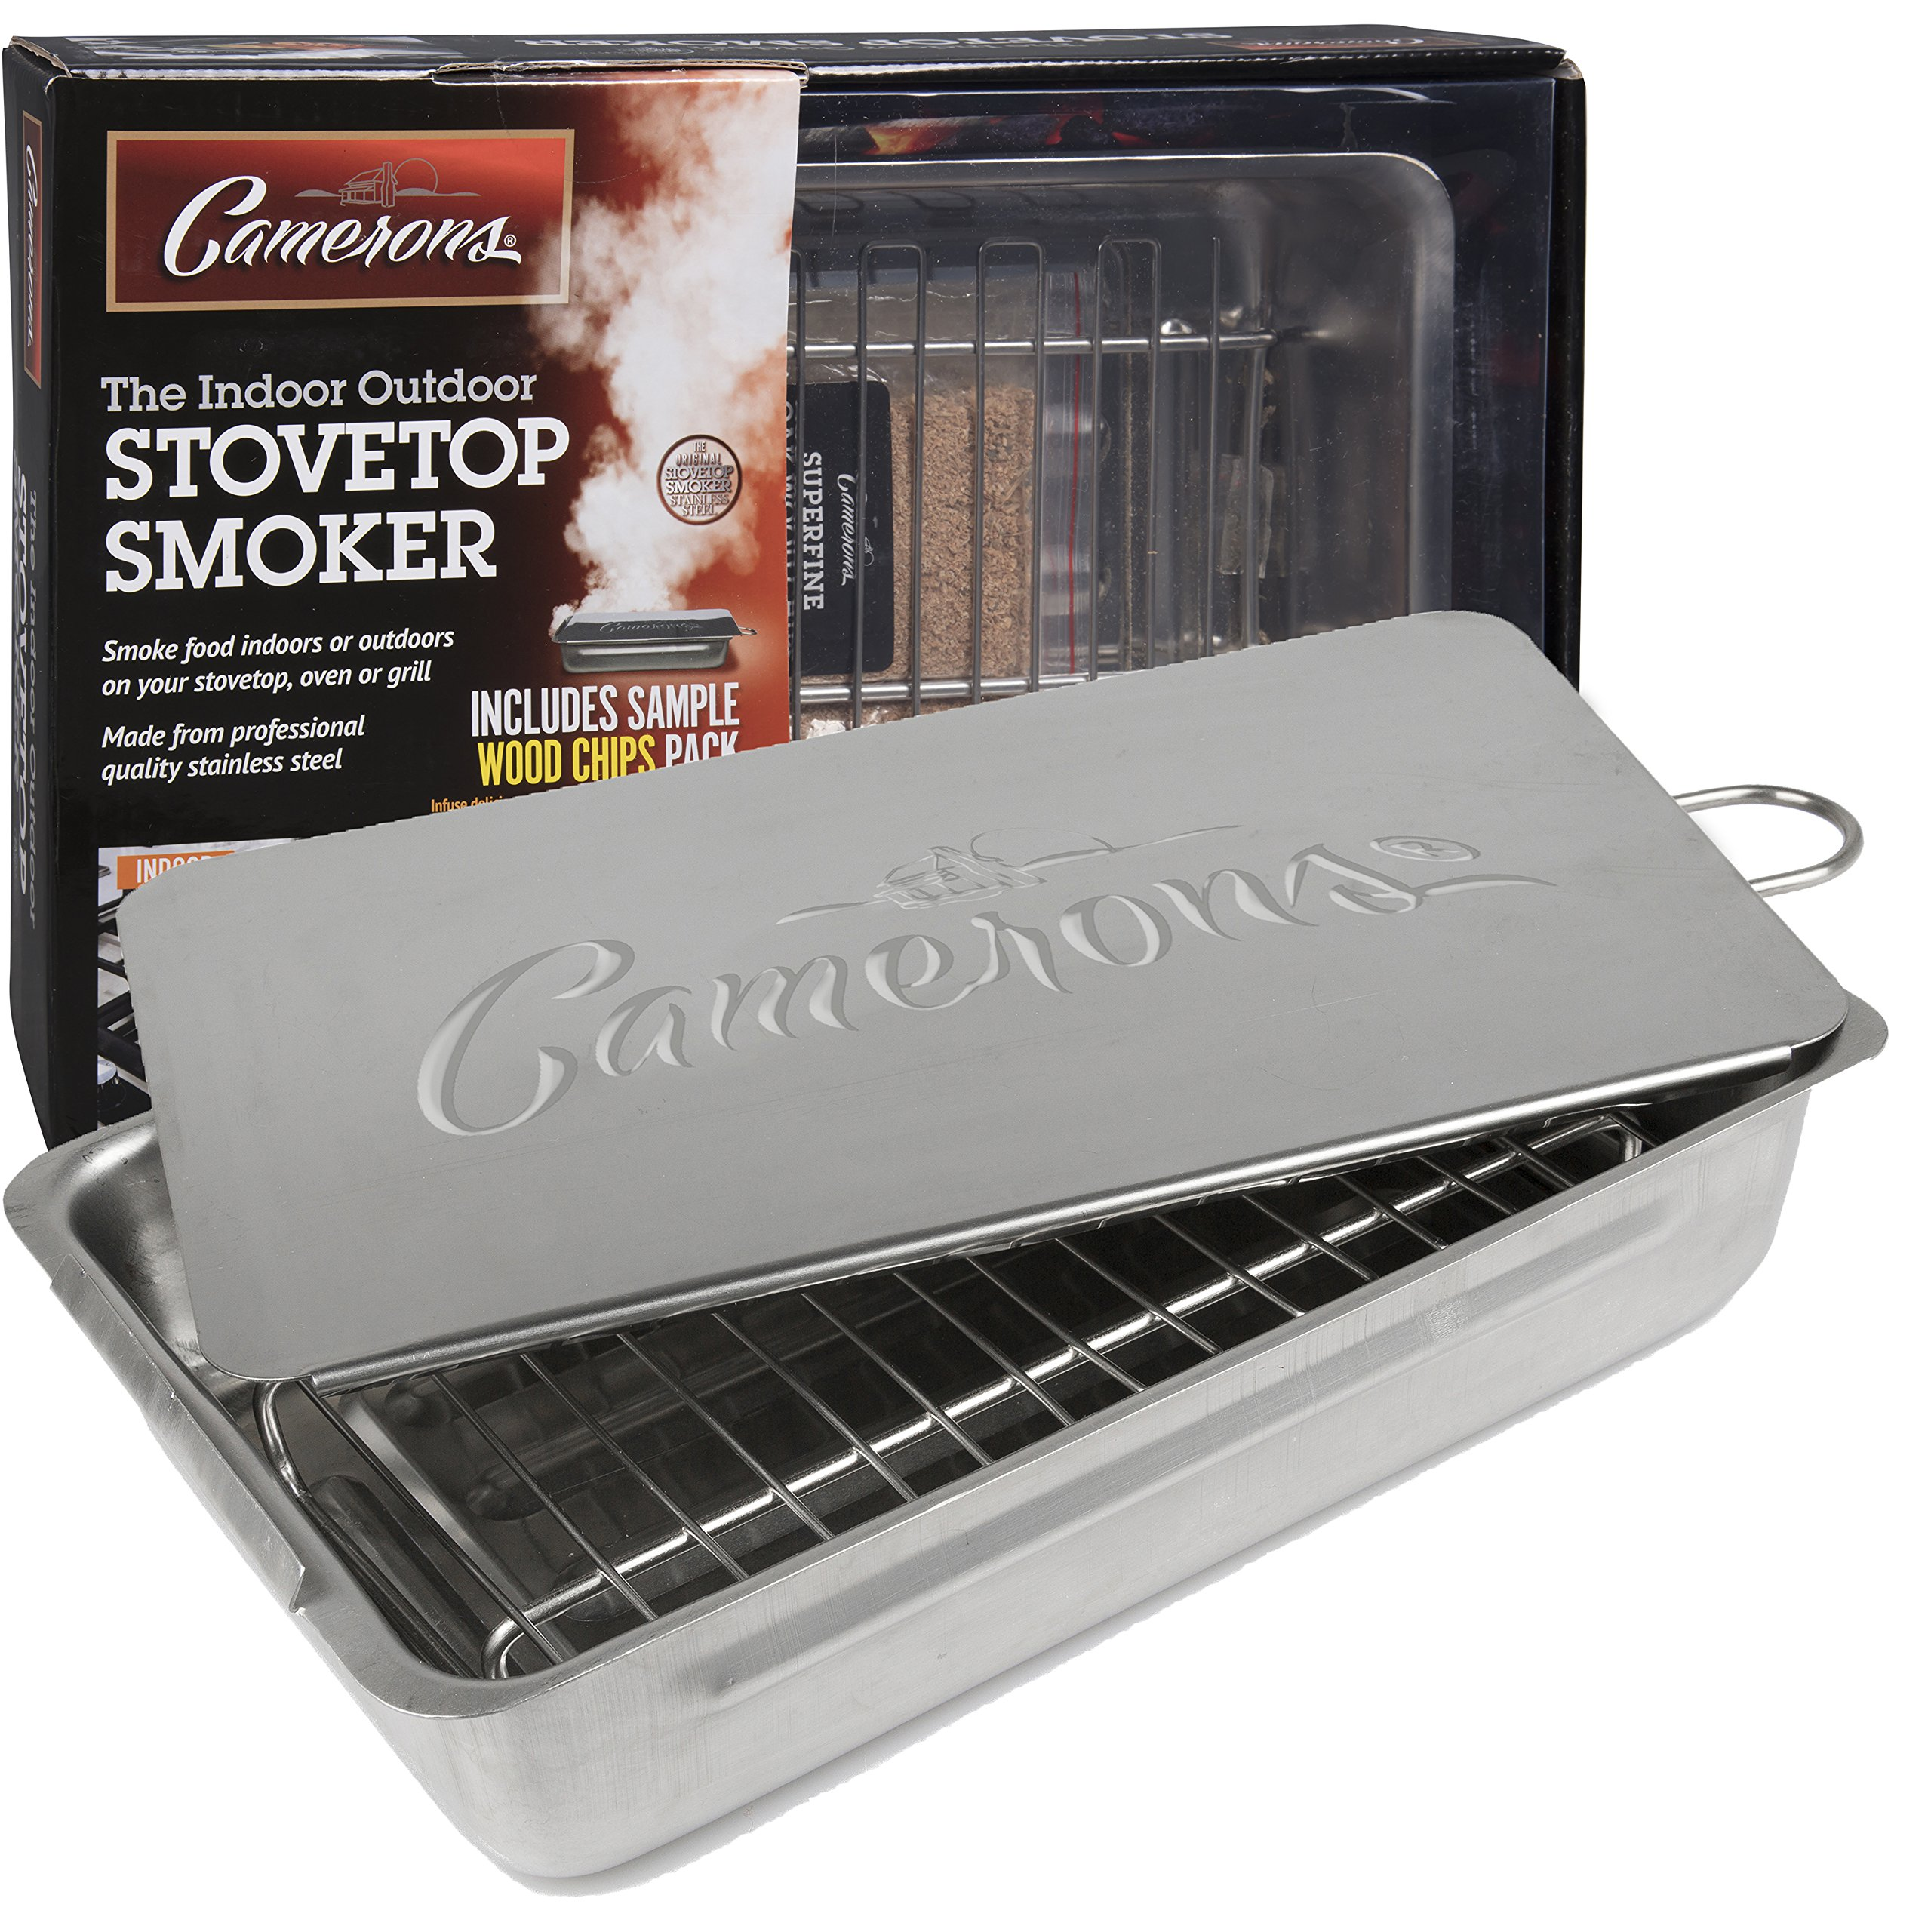 Indoor Outdoor Stovetop Smoker - Heavy Duty Stainless Steel 11'' Smoker with Wood Chips Included by Camerons Products